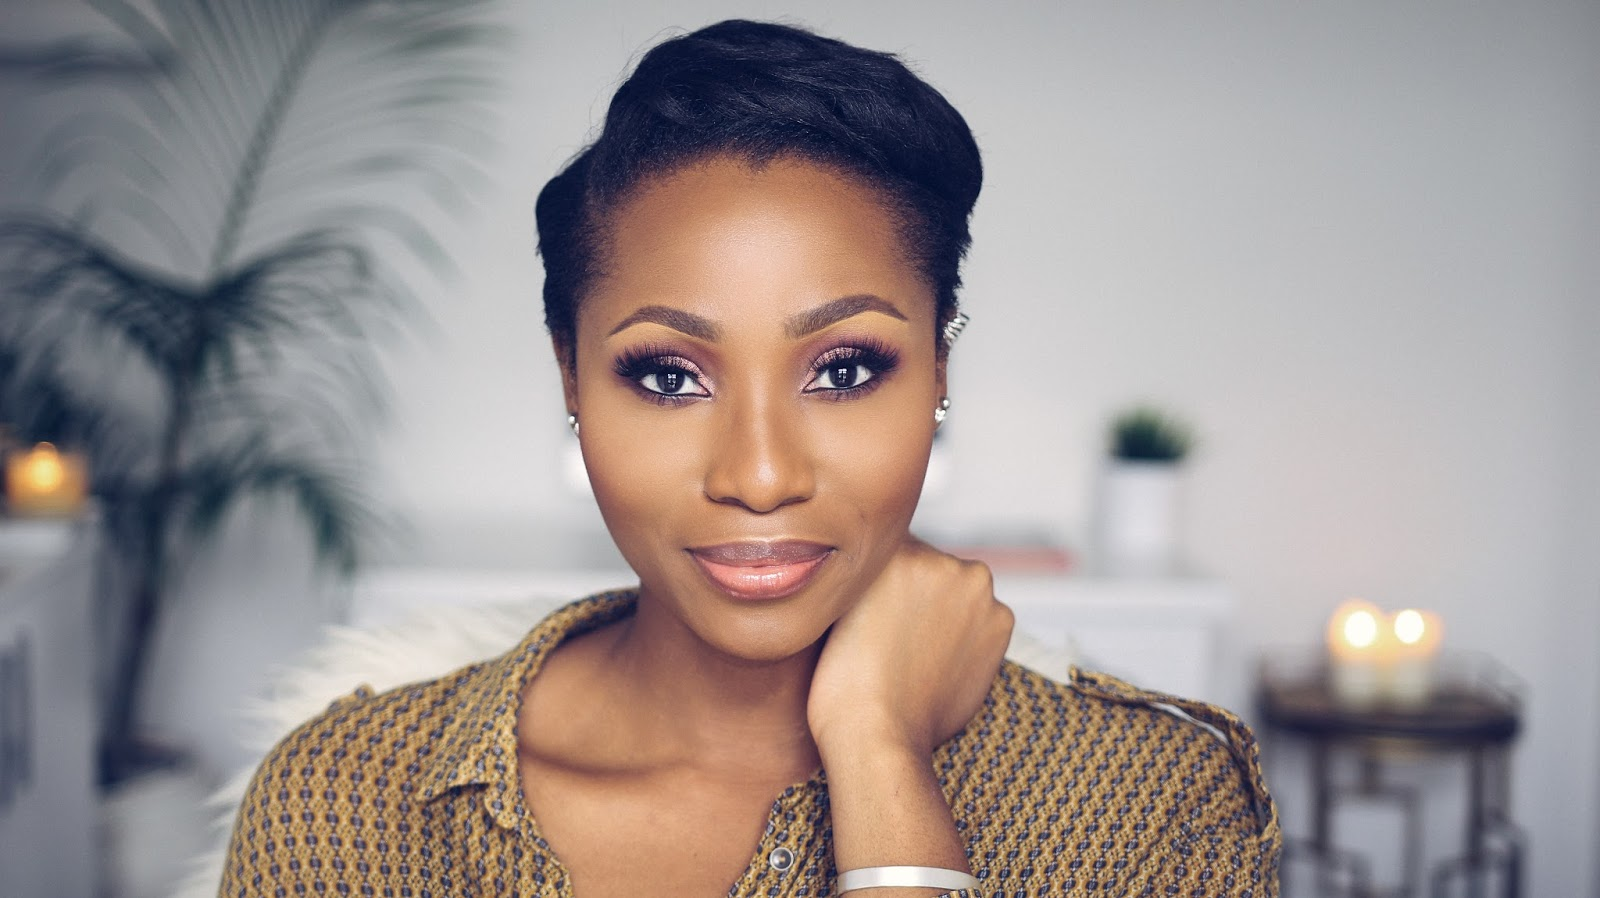 Having Difficulty Getting A Foundation For Your Oily Skin? Watch This Dimma Umeh Vlog And Solve Your Problem